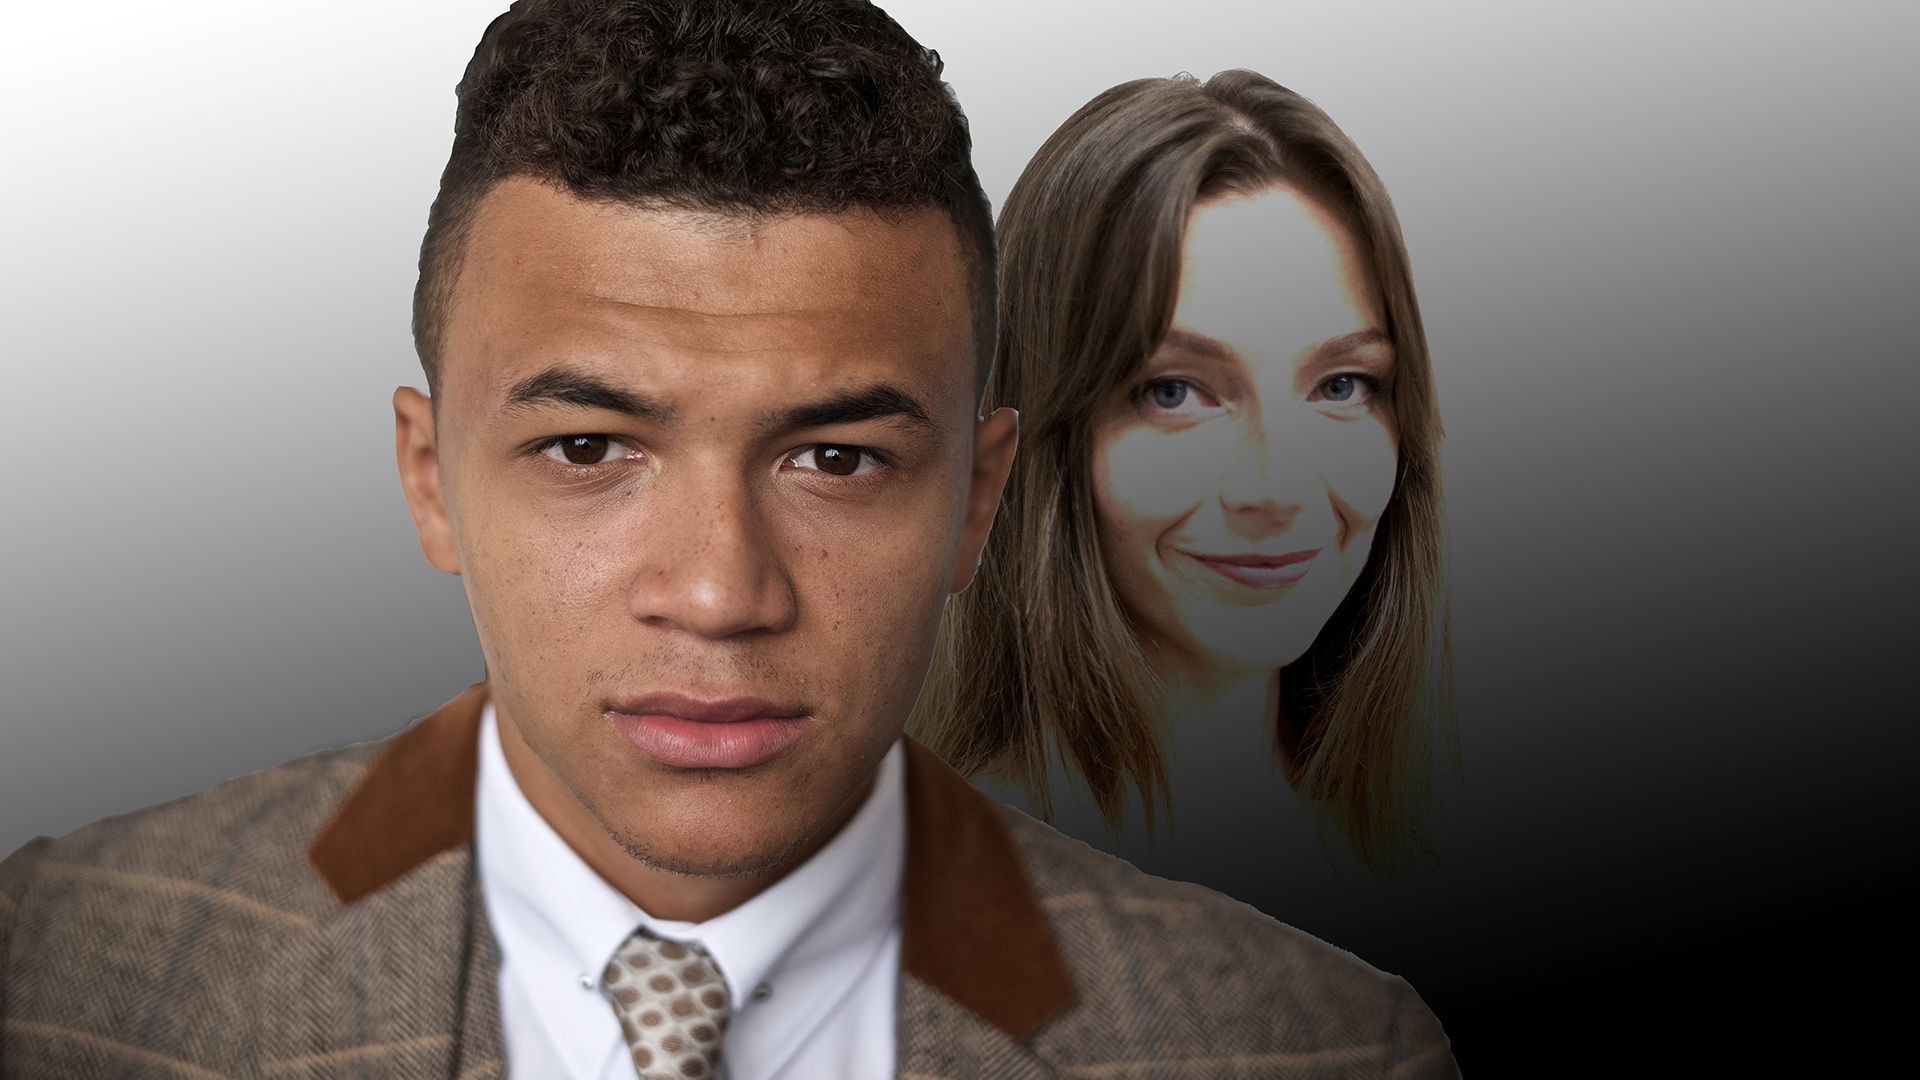 Reece Douglas and Miranda Benjamin to star in Erik Knudsen's Cleft Lip